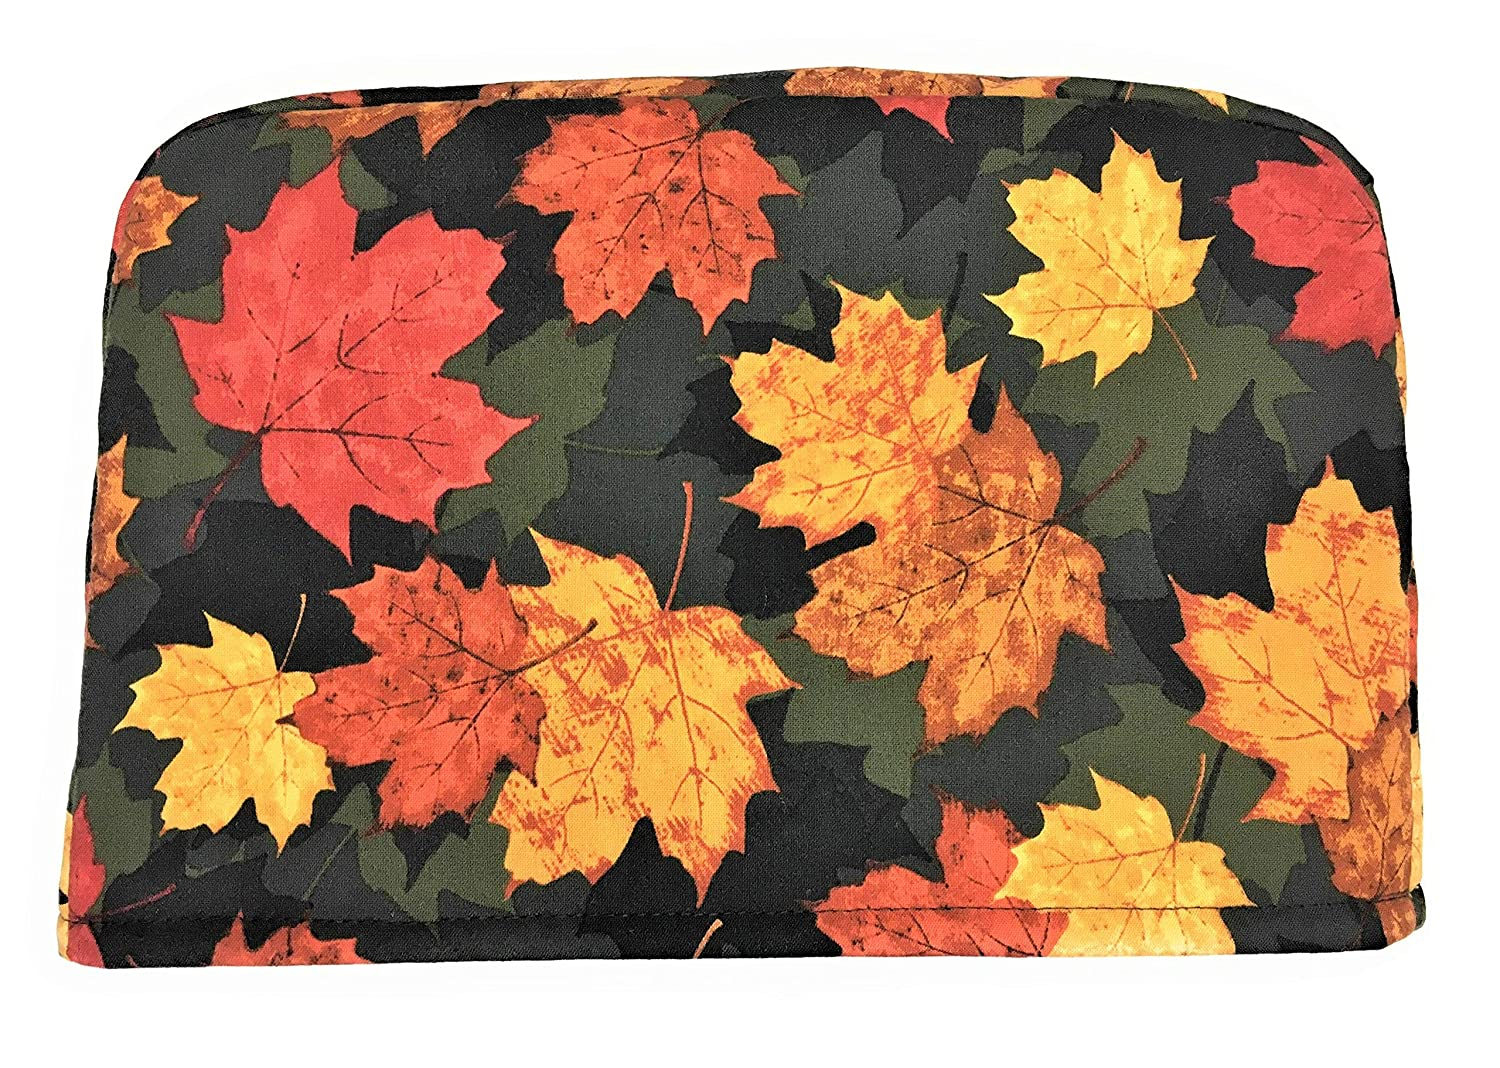 2 Slice Finally popular brand - Fall Autumn Maple Yellow Red Leaves Brown In a popularity Harvest Than